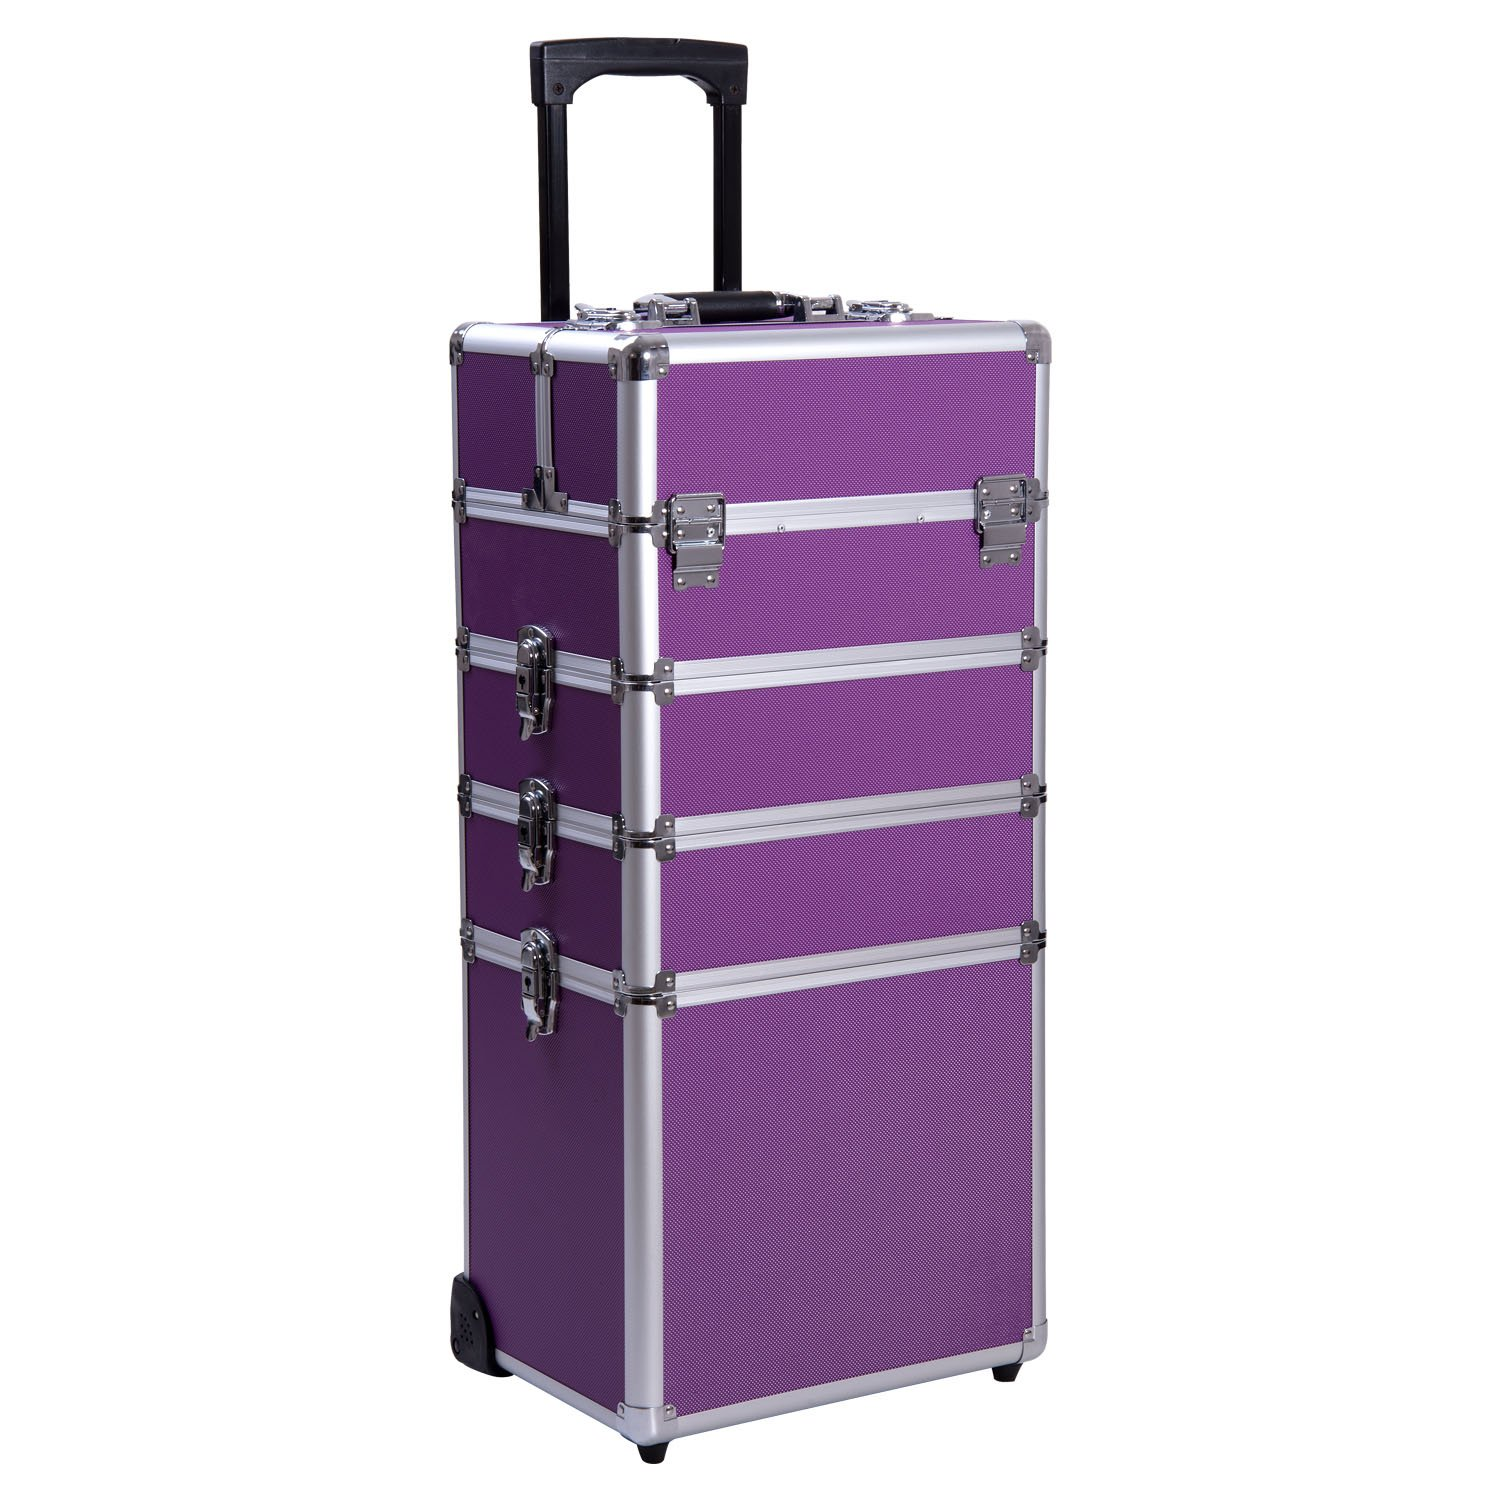 Ollieroo 4 in 1 Aluminum Rolling Cosmetic Makeup Train Cases Trolley Professional Artist Train Case Organizer Box Lift Handle Lock 2 wheel 2 Keys Each Layer Total 8 Keys Purple by Ollieroo (Image #1)